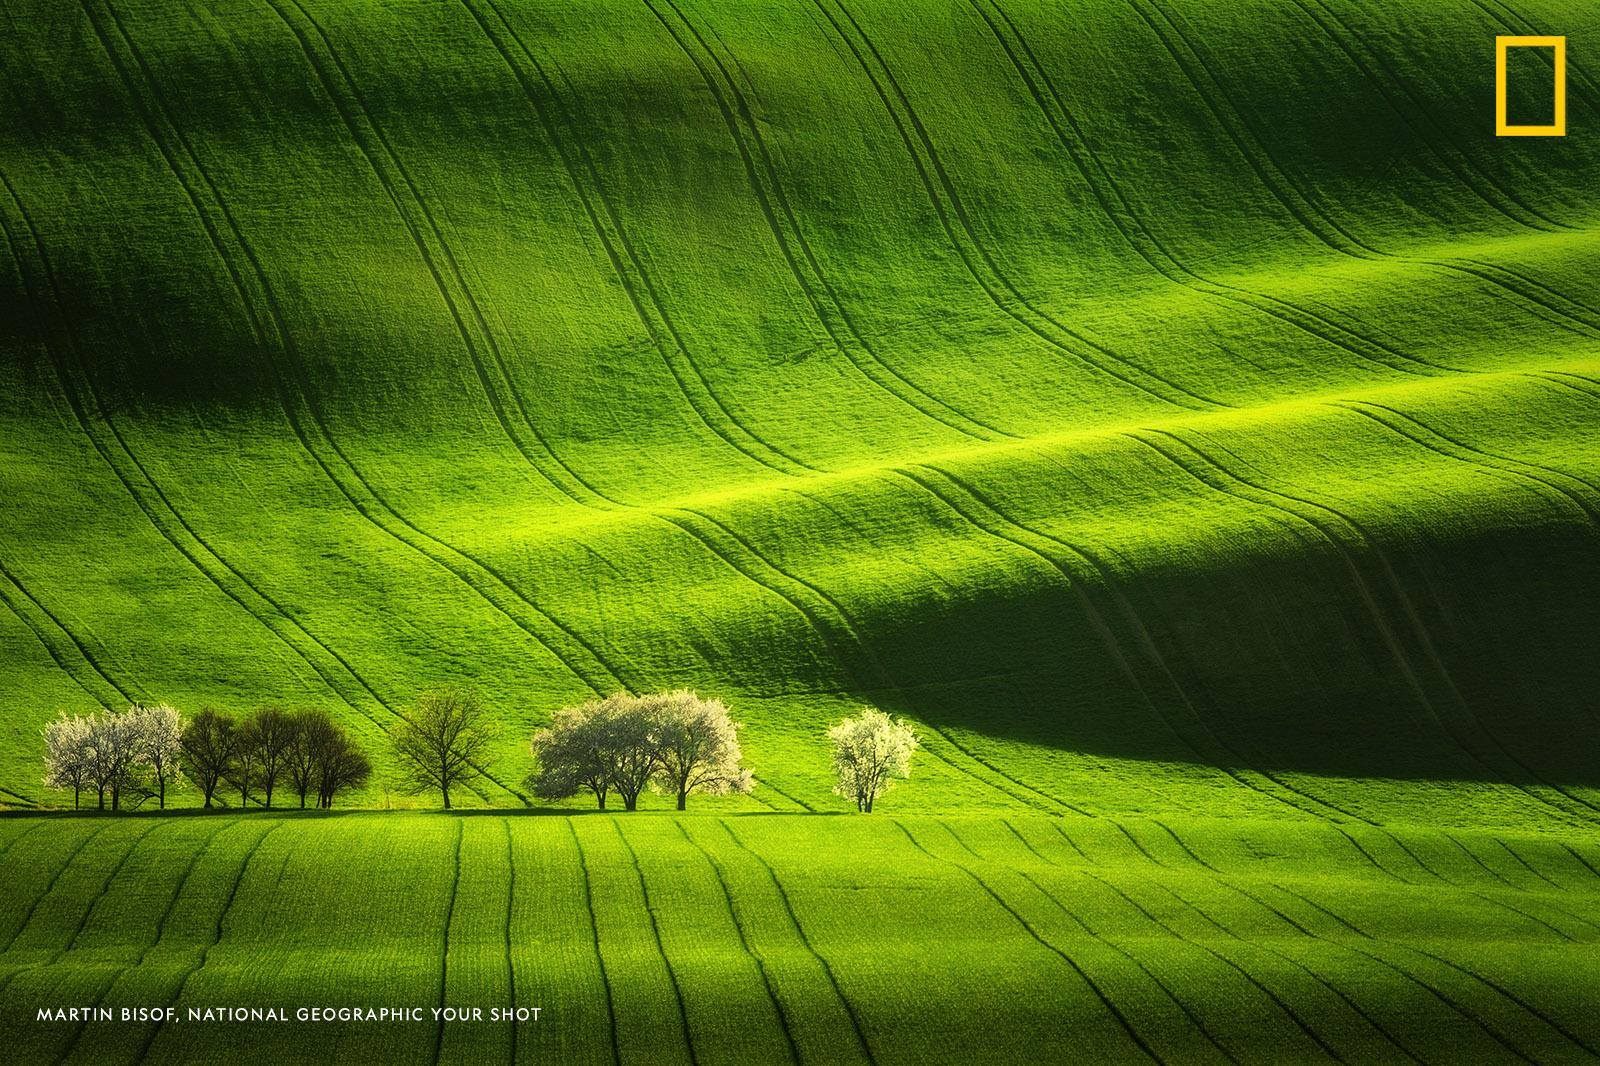 """Your Shot photographer Martin Bisof found out that he didn't need to travel far to find this beautiful landscape. """"In the Moravian region located in the Czech Republic it's possible to find such beauty during the spring time."""" https://on.natgeo.com/2Pyzdu1"""